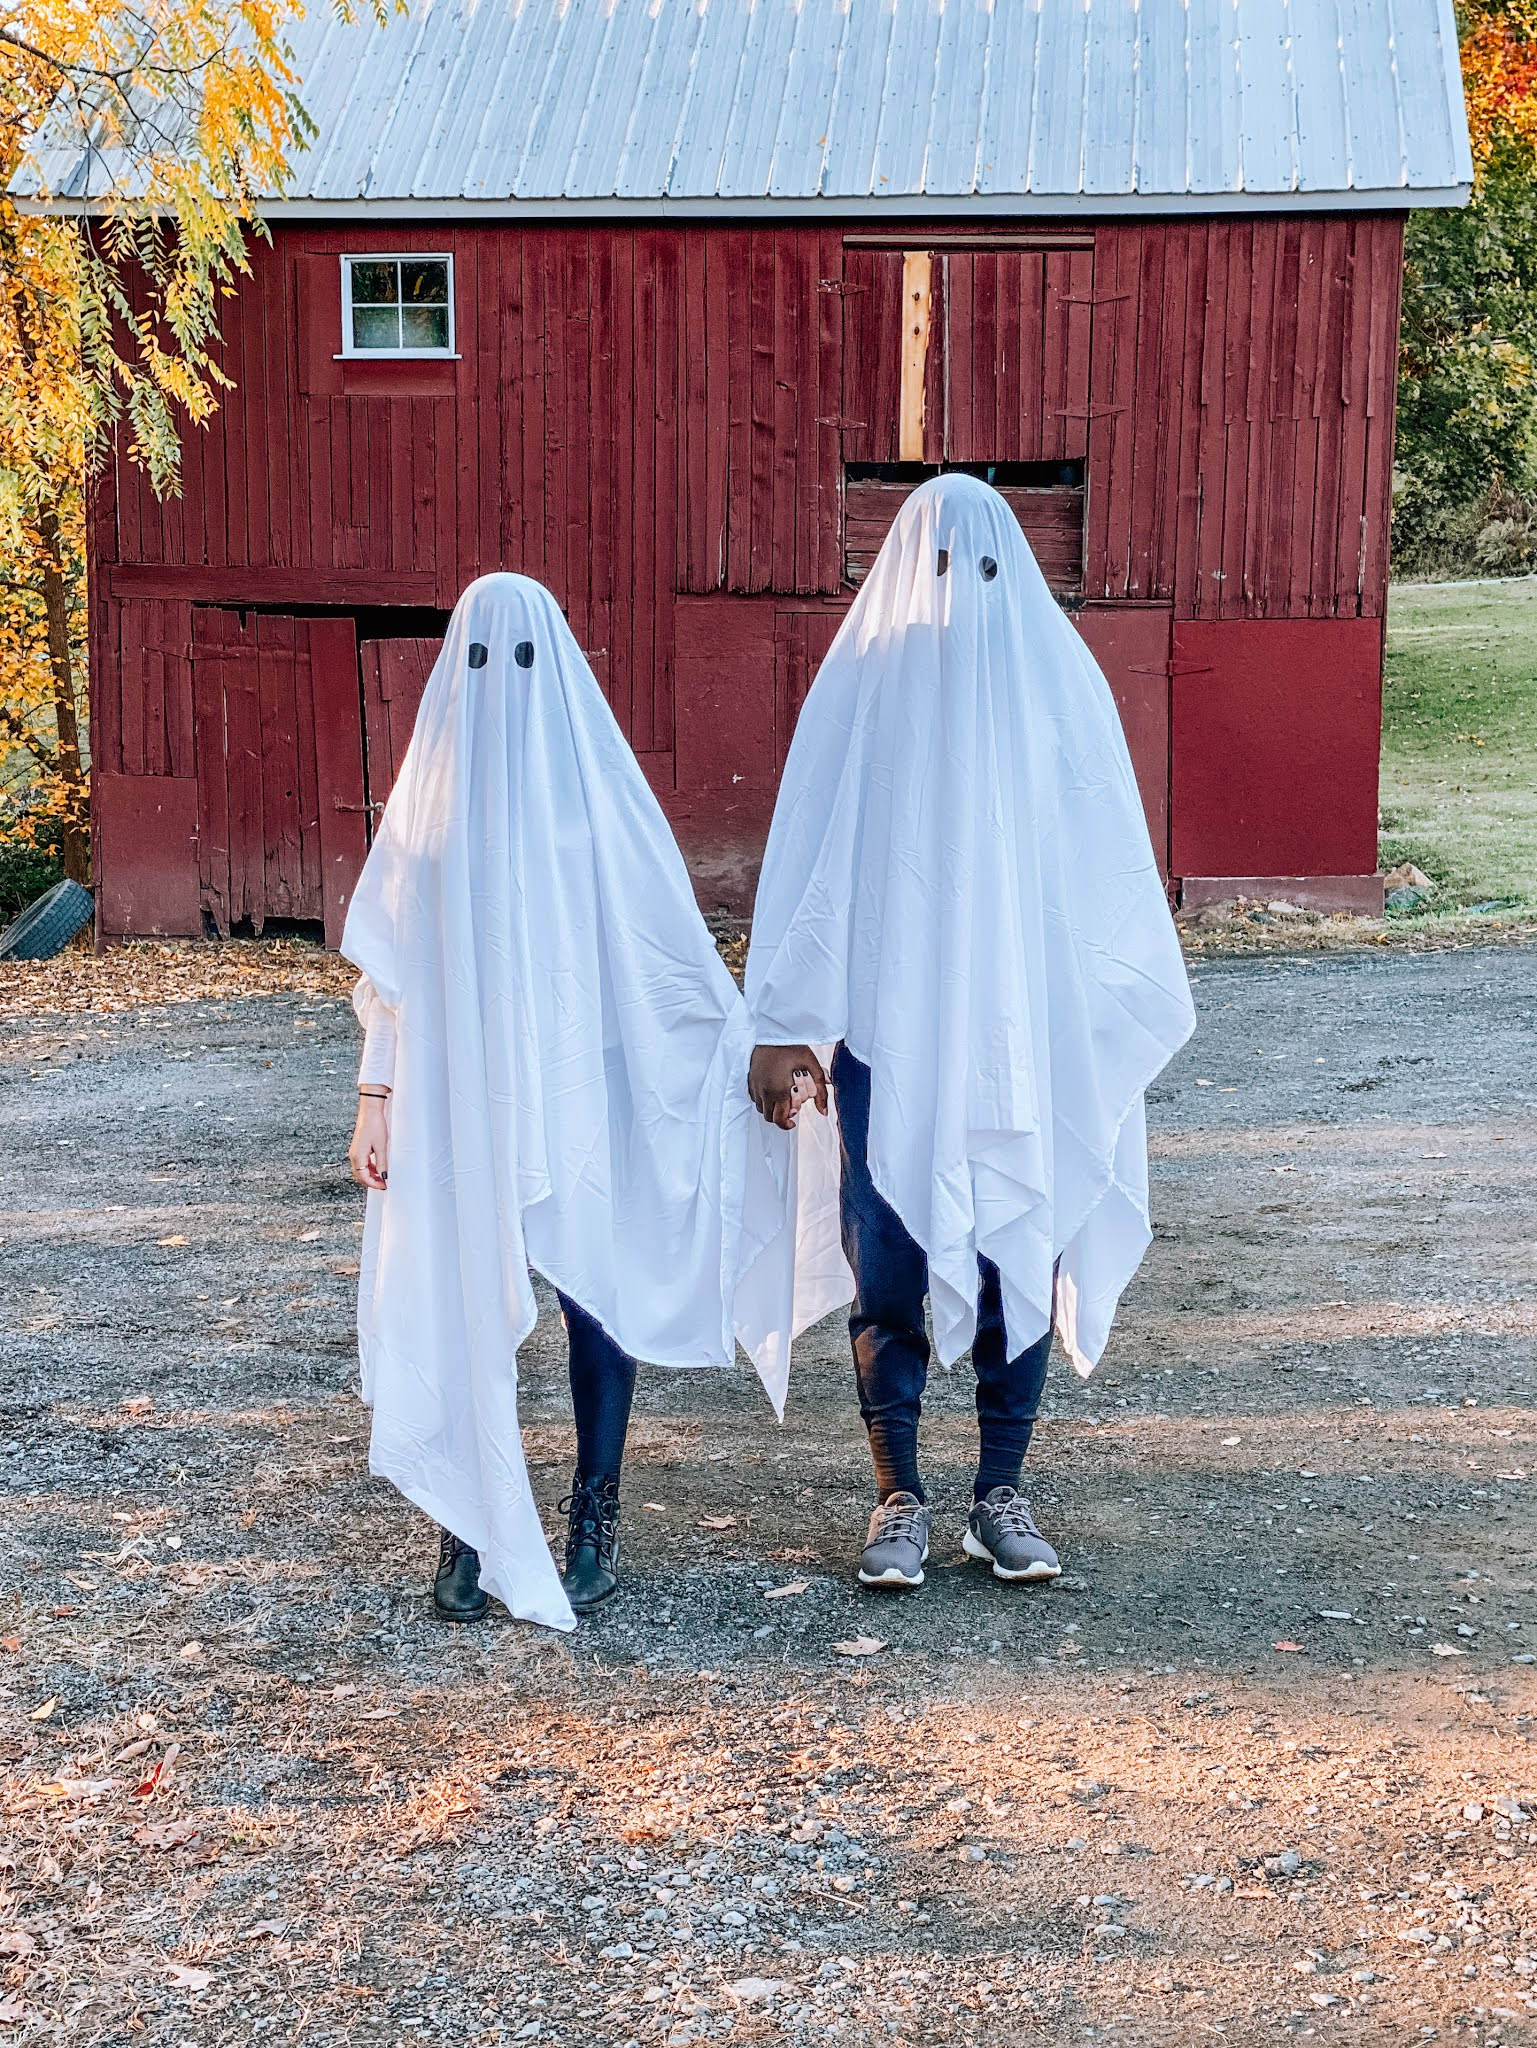 Fashion blogger Kathleen Harper dressed as a ghost for a Halloween photo shoot.